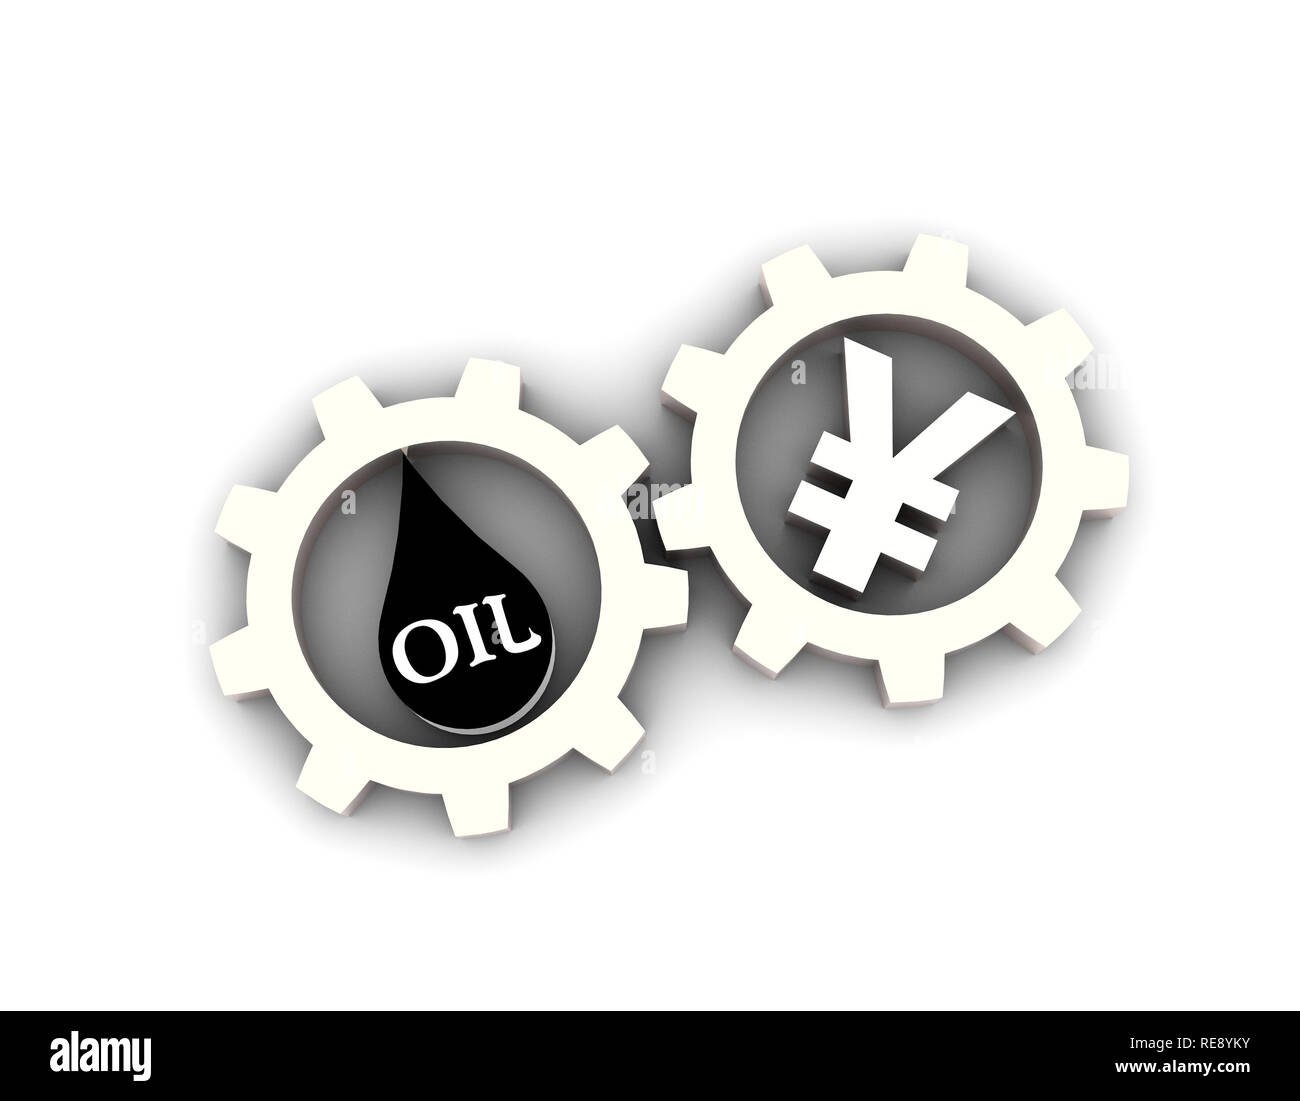 Exchange of RMB and oil, oil and renminbi, energy money, currency symbols and gears - Stock Image